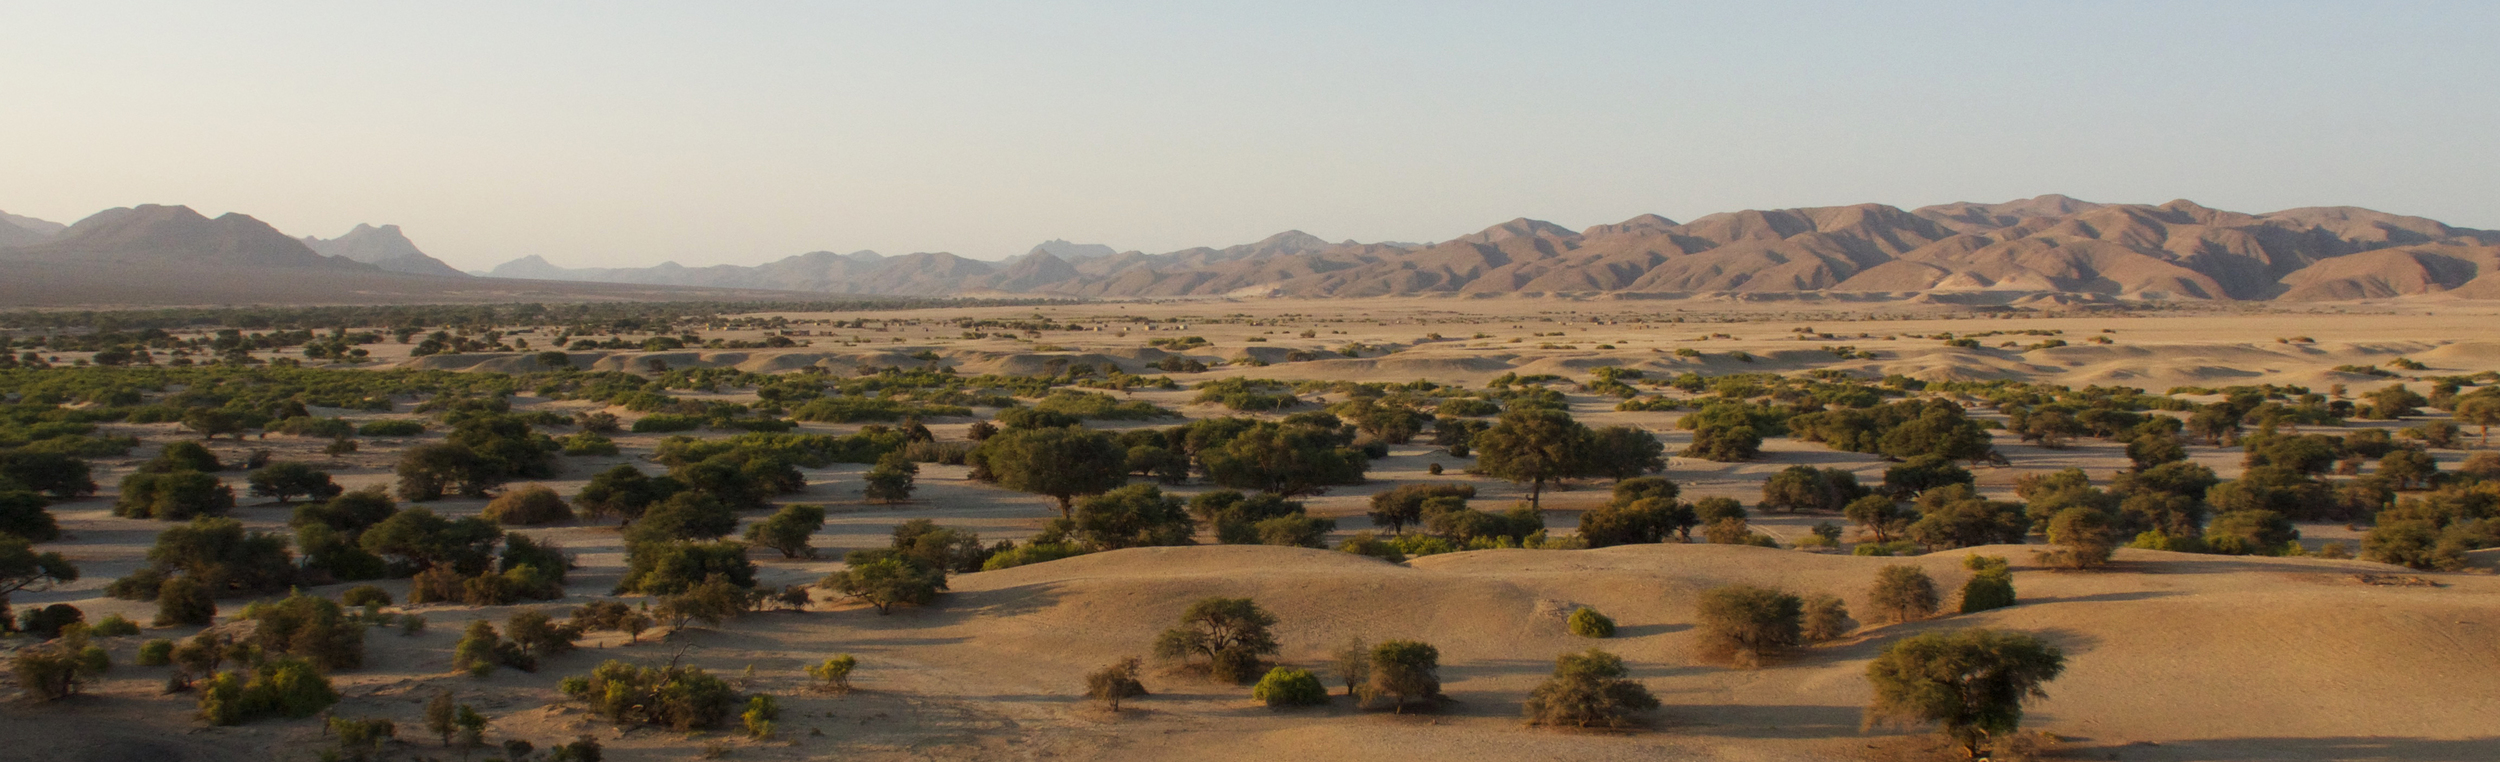 The small community of Purros in the far northwest of Namibia, one of three locations where the Soil Fertility Project - SFP - is working.